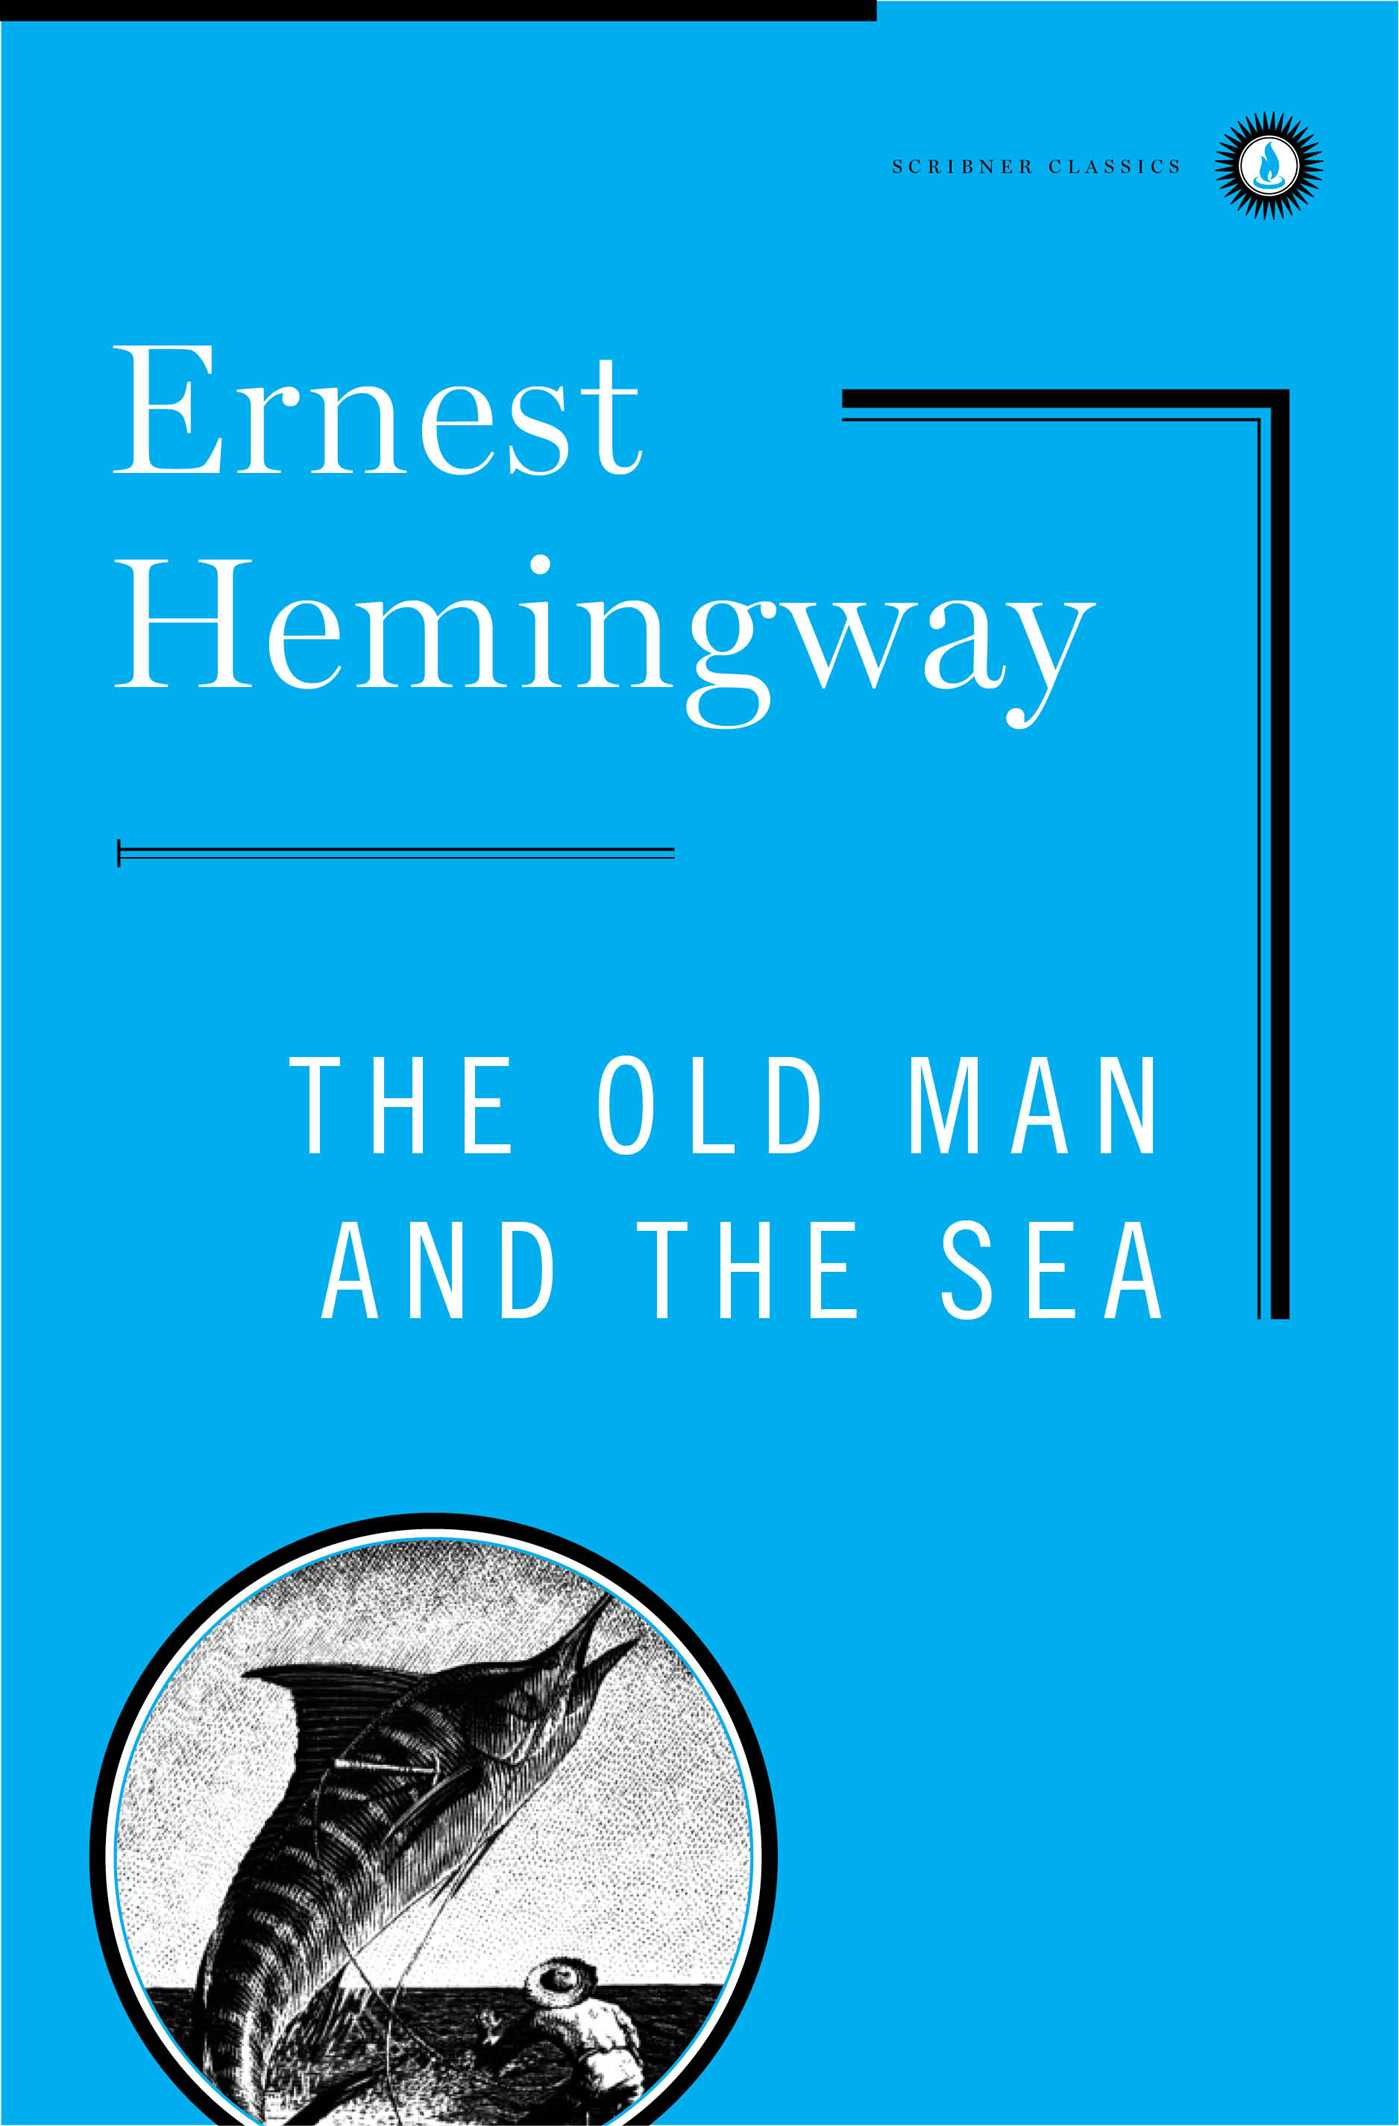 hemingways the old man and the sea - complete set of notes, page by page essay The old man and the sea october 31 he was an old man who fished alone in a skiff in the he hit it without hope but with resolution and complete.